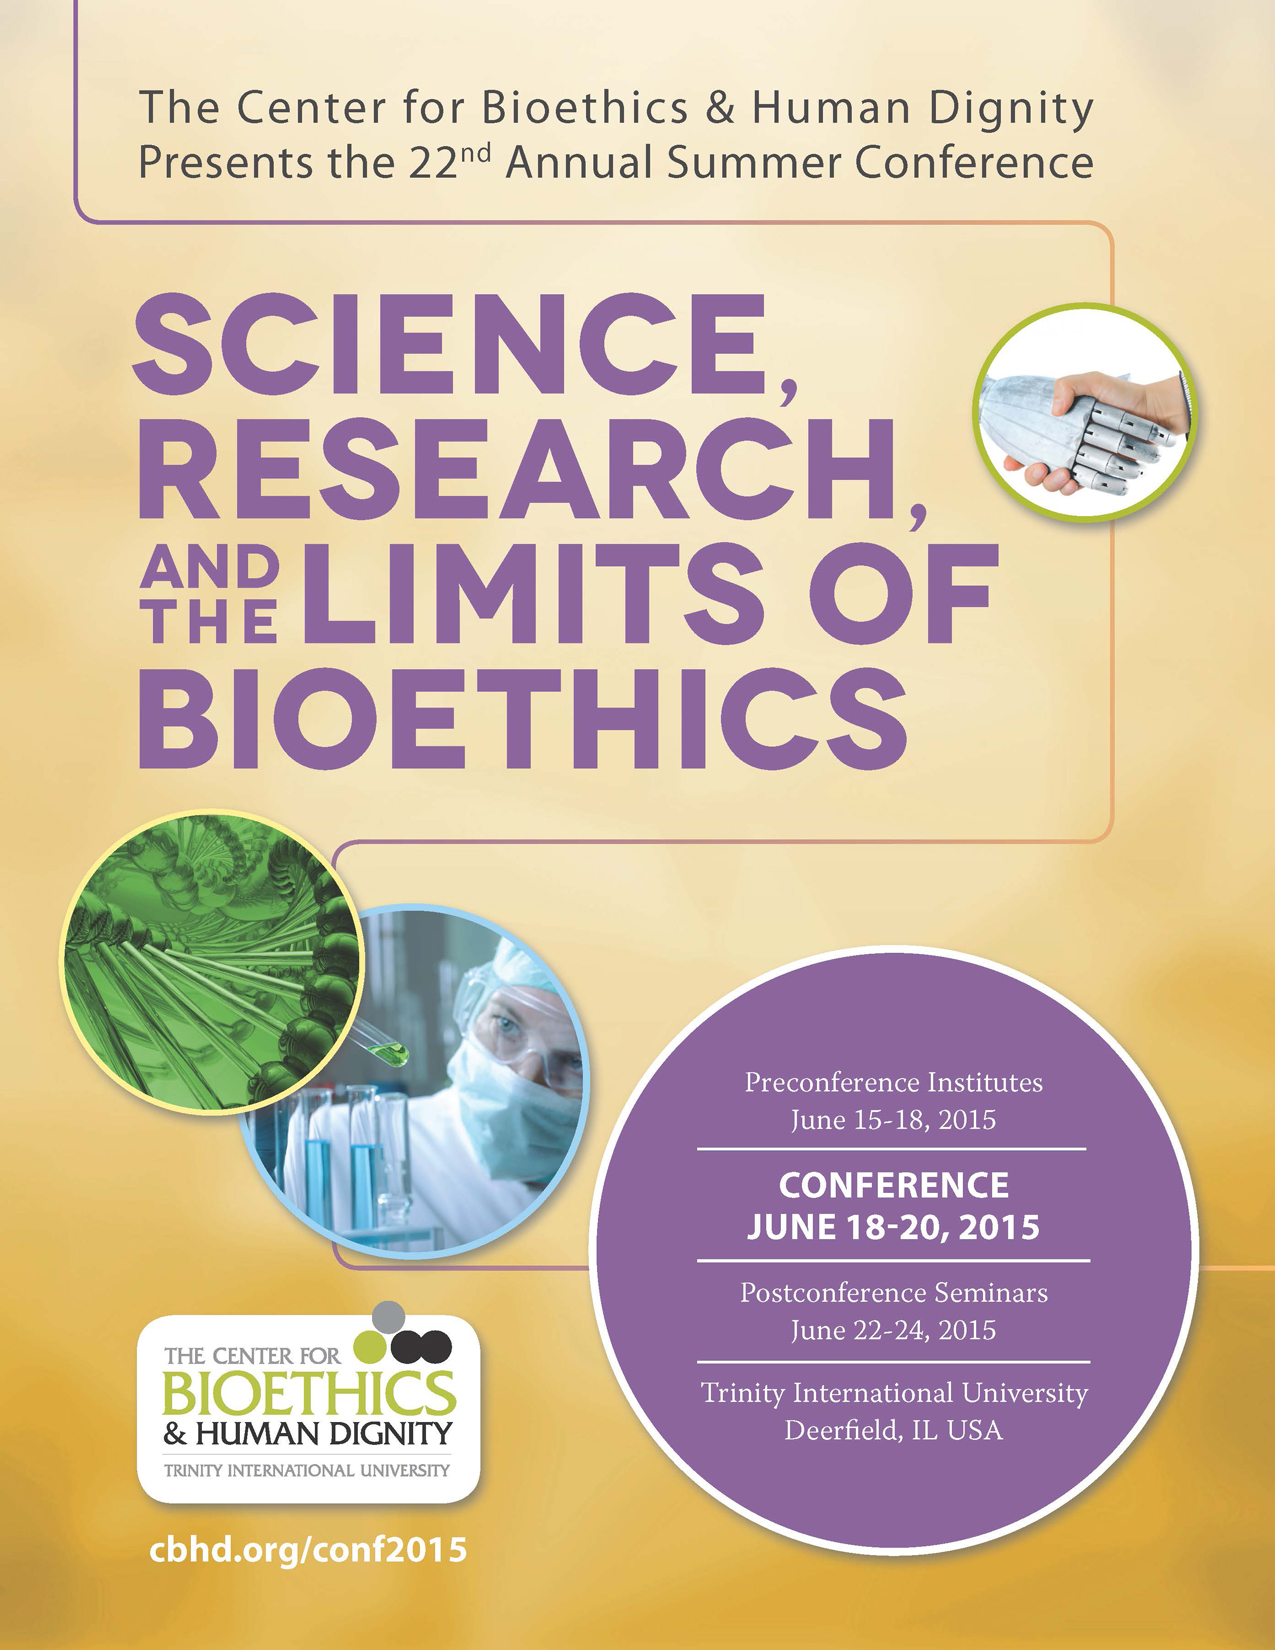 CBHD 22nd Annual Summer Conference - Science, Research, and the Limits of Bioethics